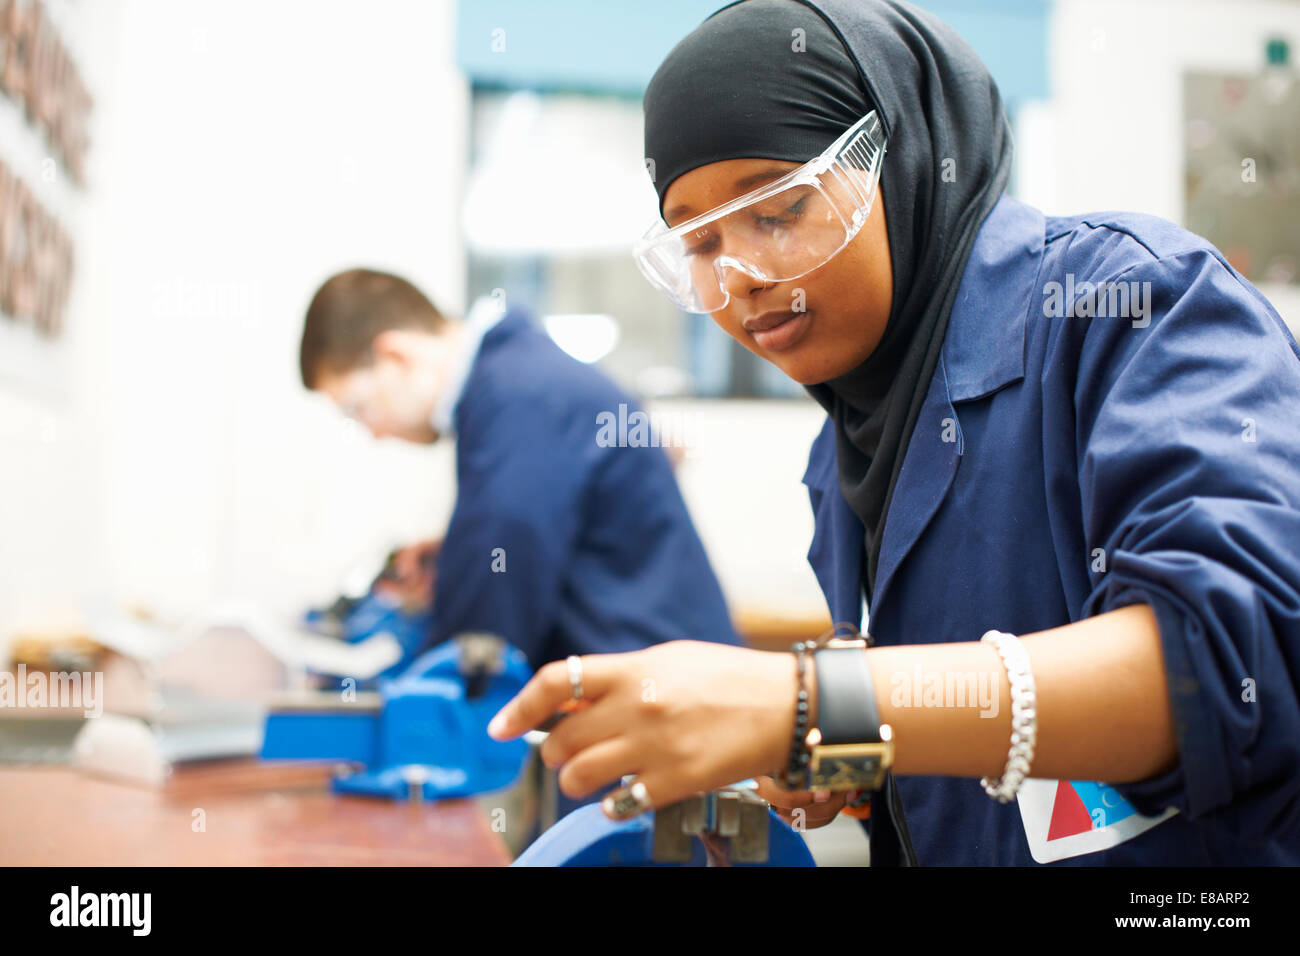 Female student using vice grip in college workshop - Stock Image